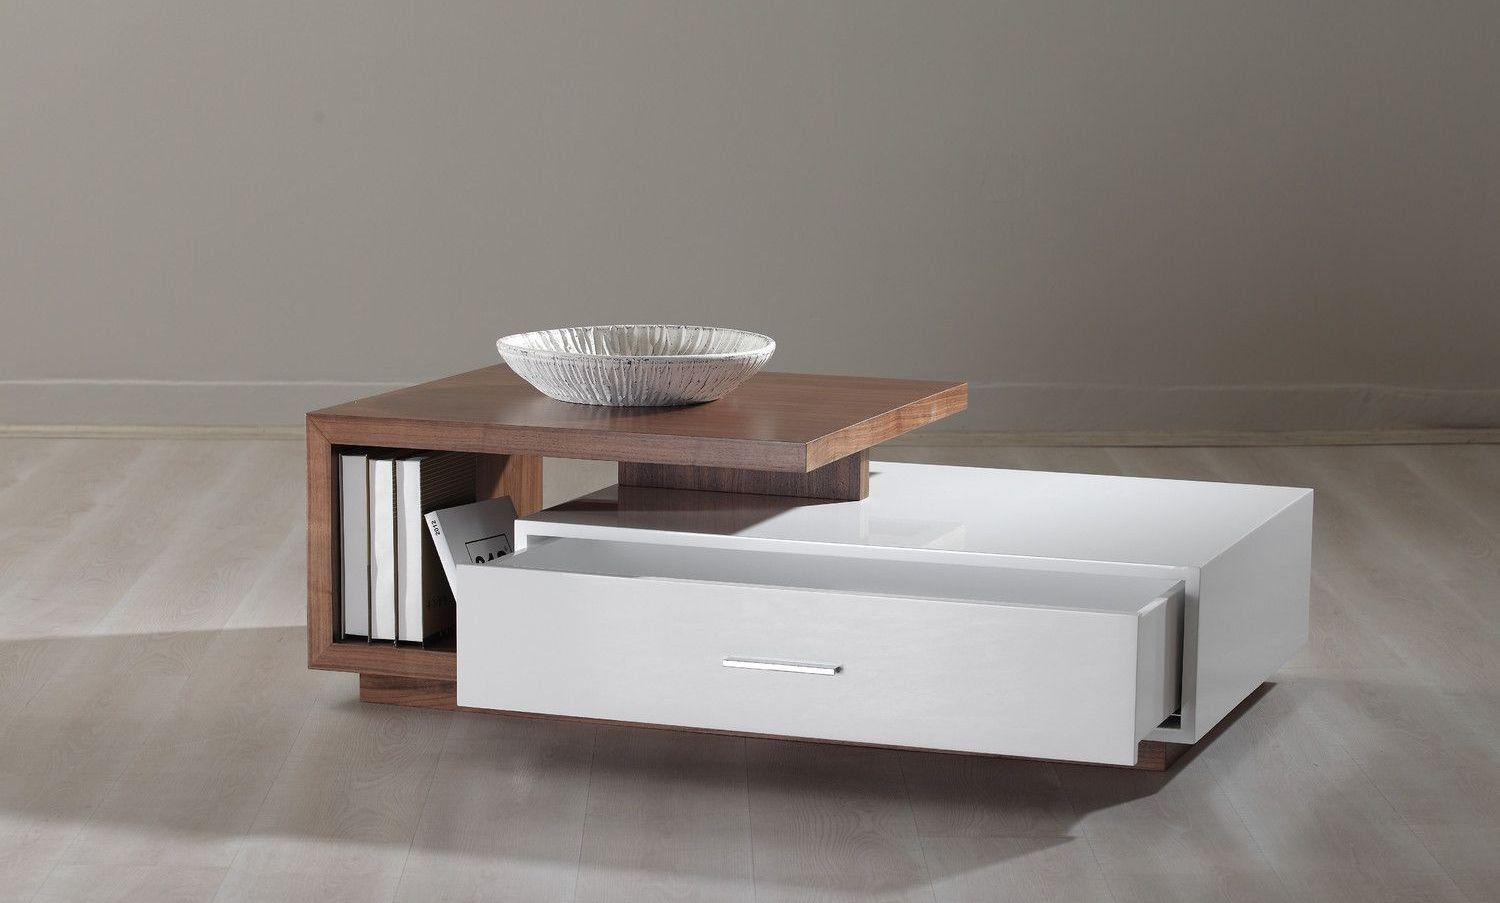 22 Modern Coffee Tables Designs Interesting Best Unique And Classy Center Table Living Room Contemporary Coffee Table Coffee Table Design [ 903 x 1500 Pixel ]